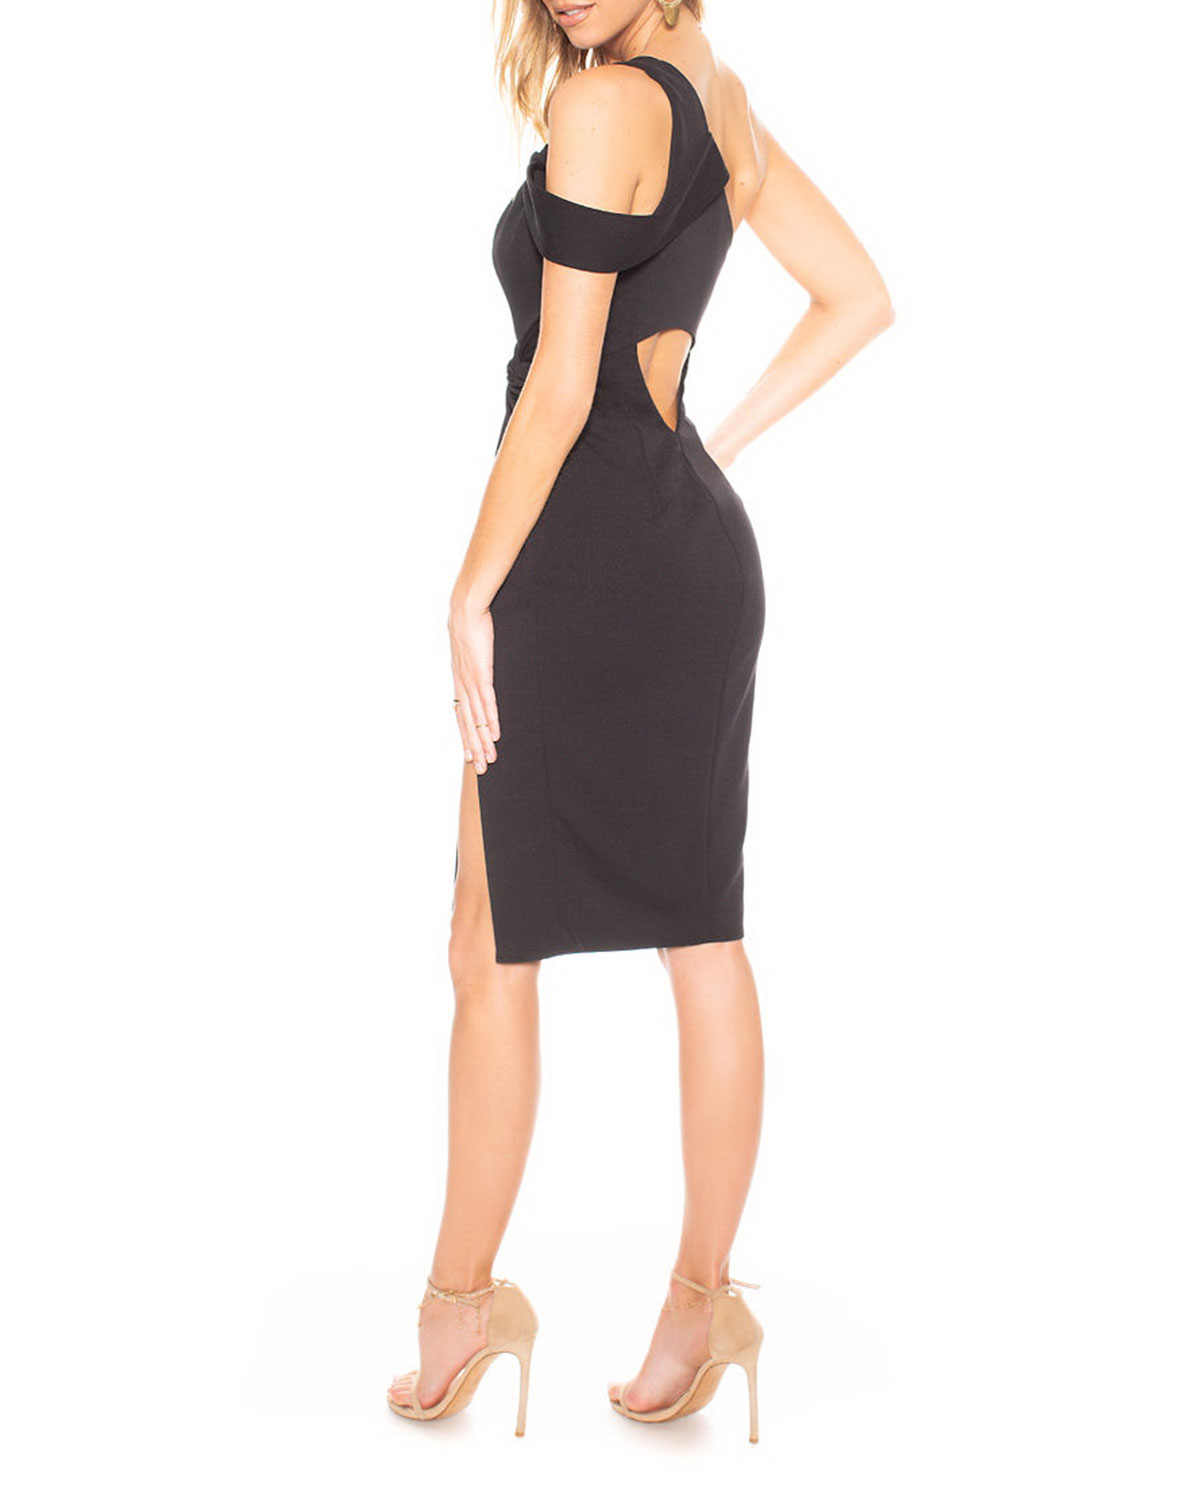 Chic Af Asymmetric Knot Shoulder Cutout Back Dress by Katie May